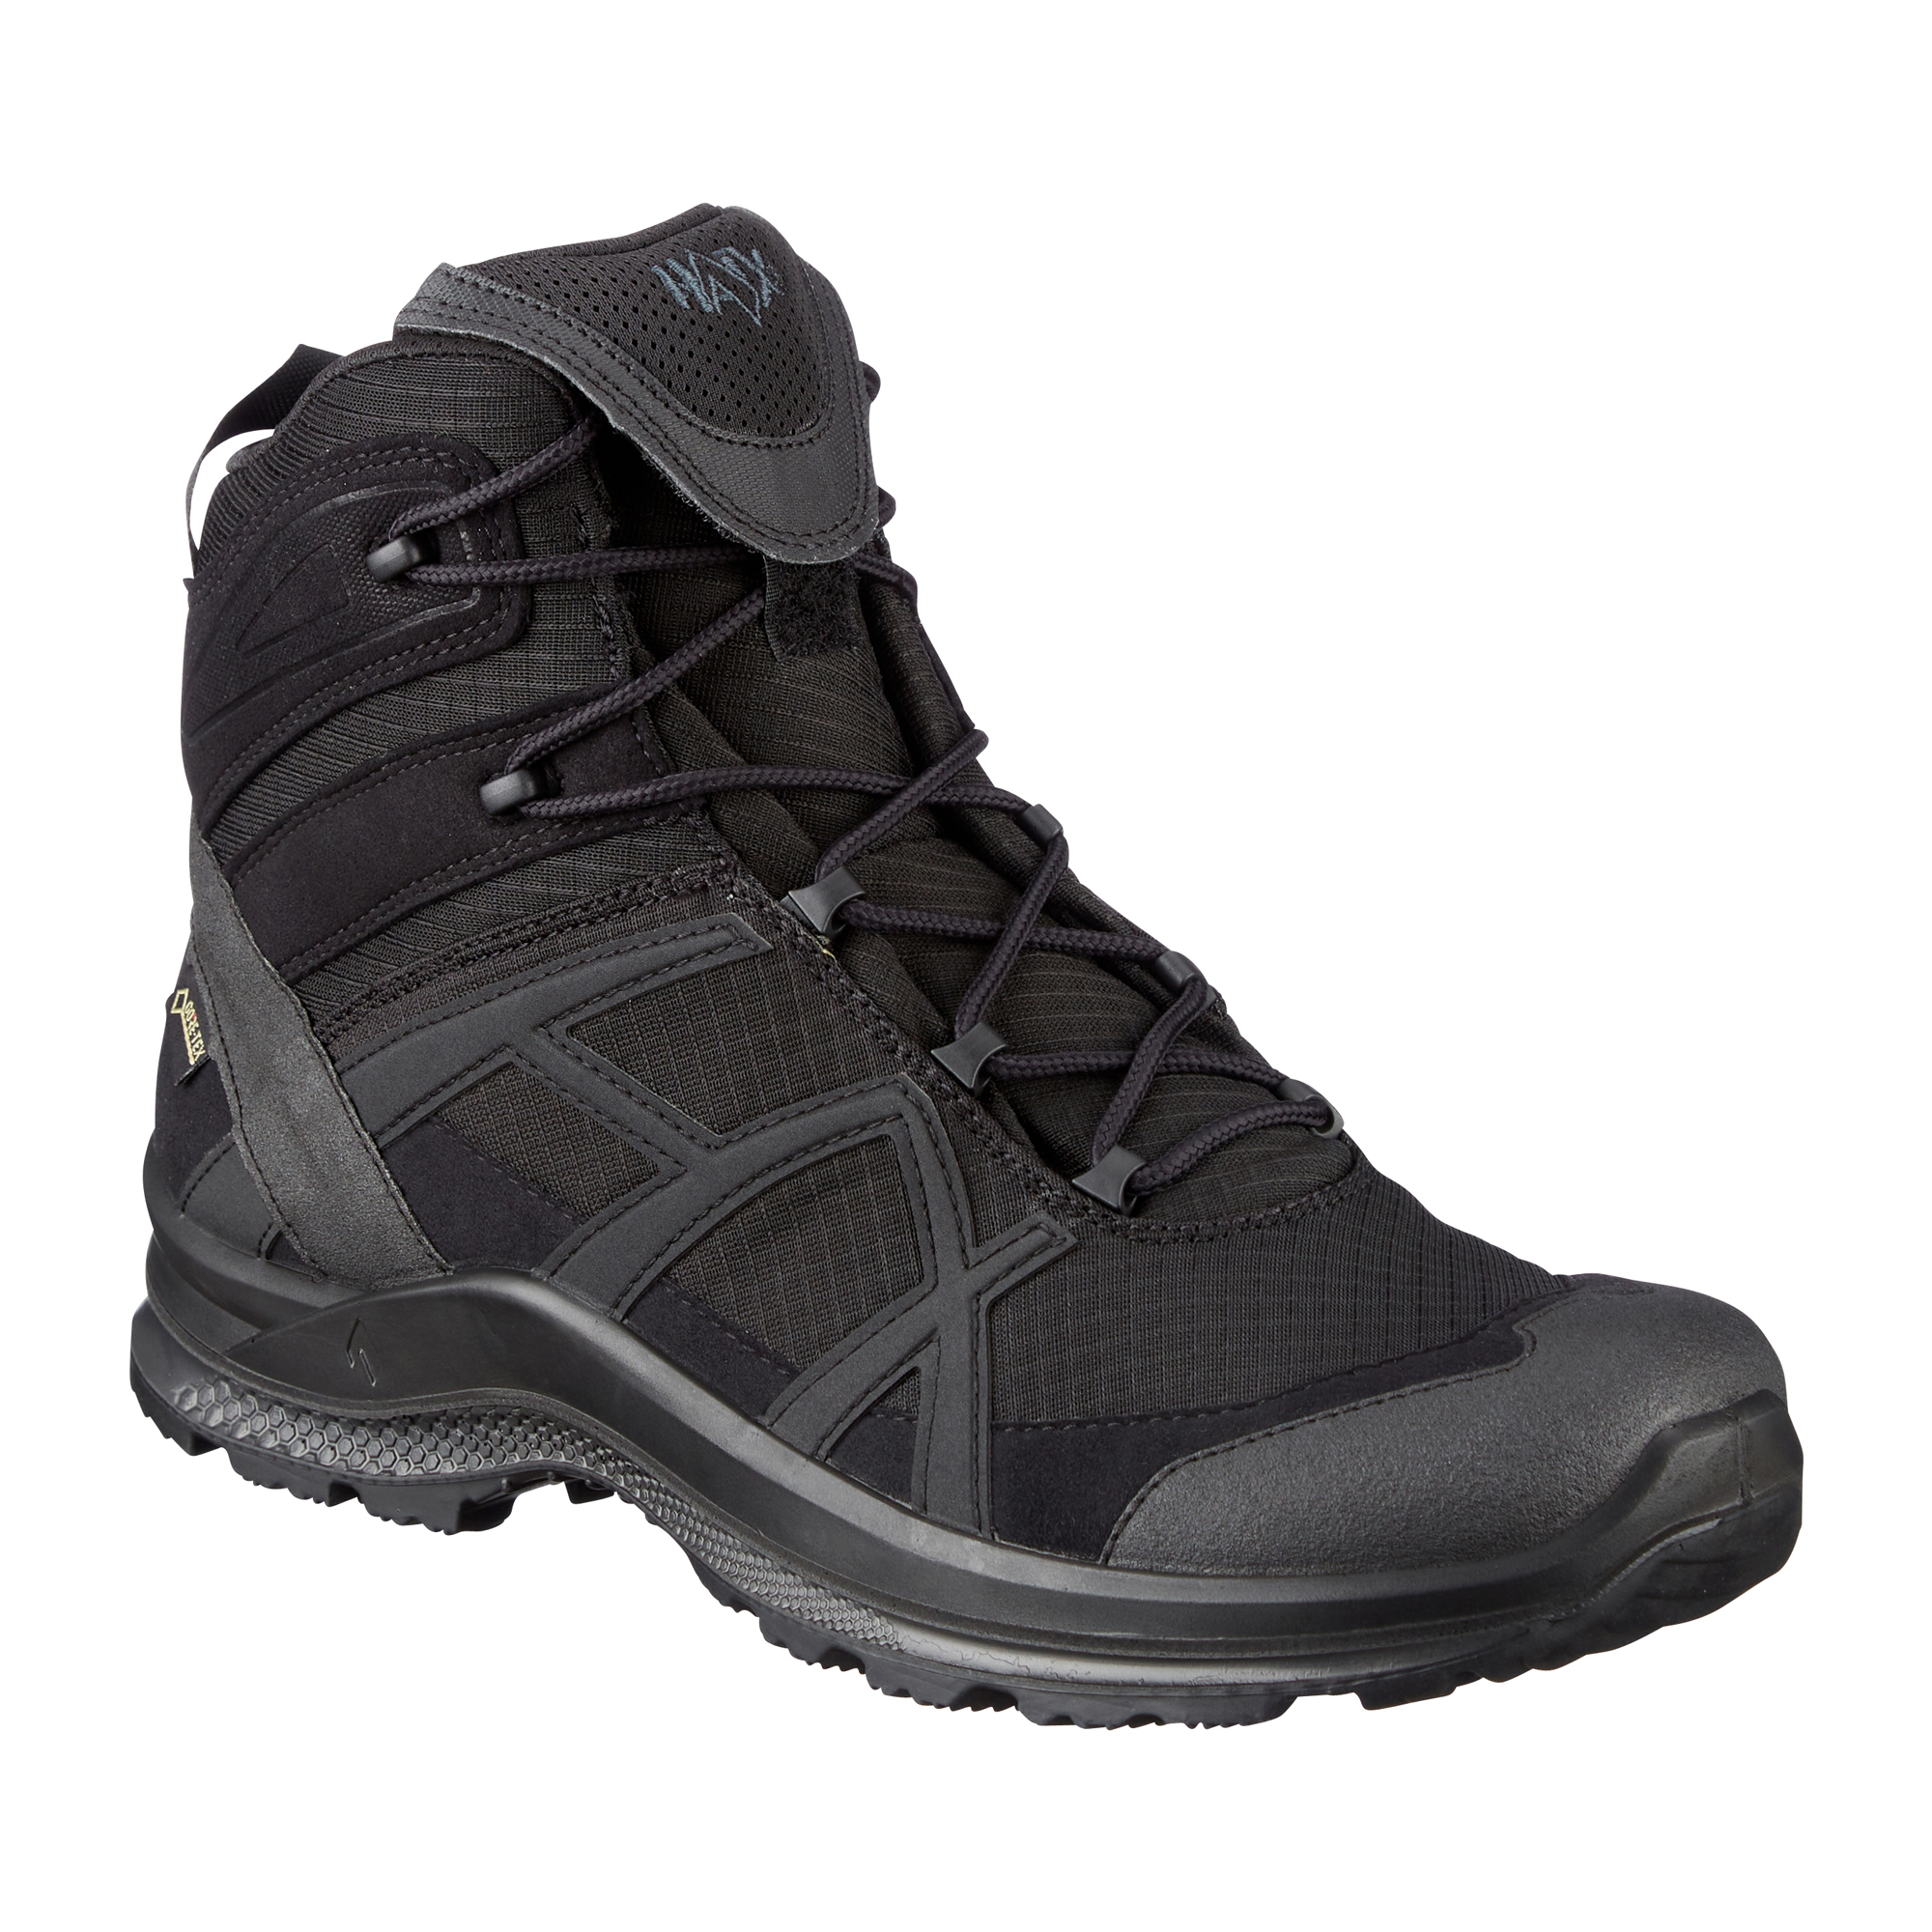 Purchase the Haix Tactical Boots Black